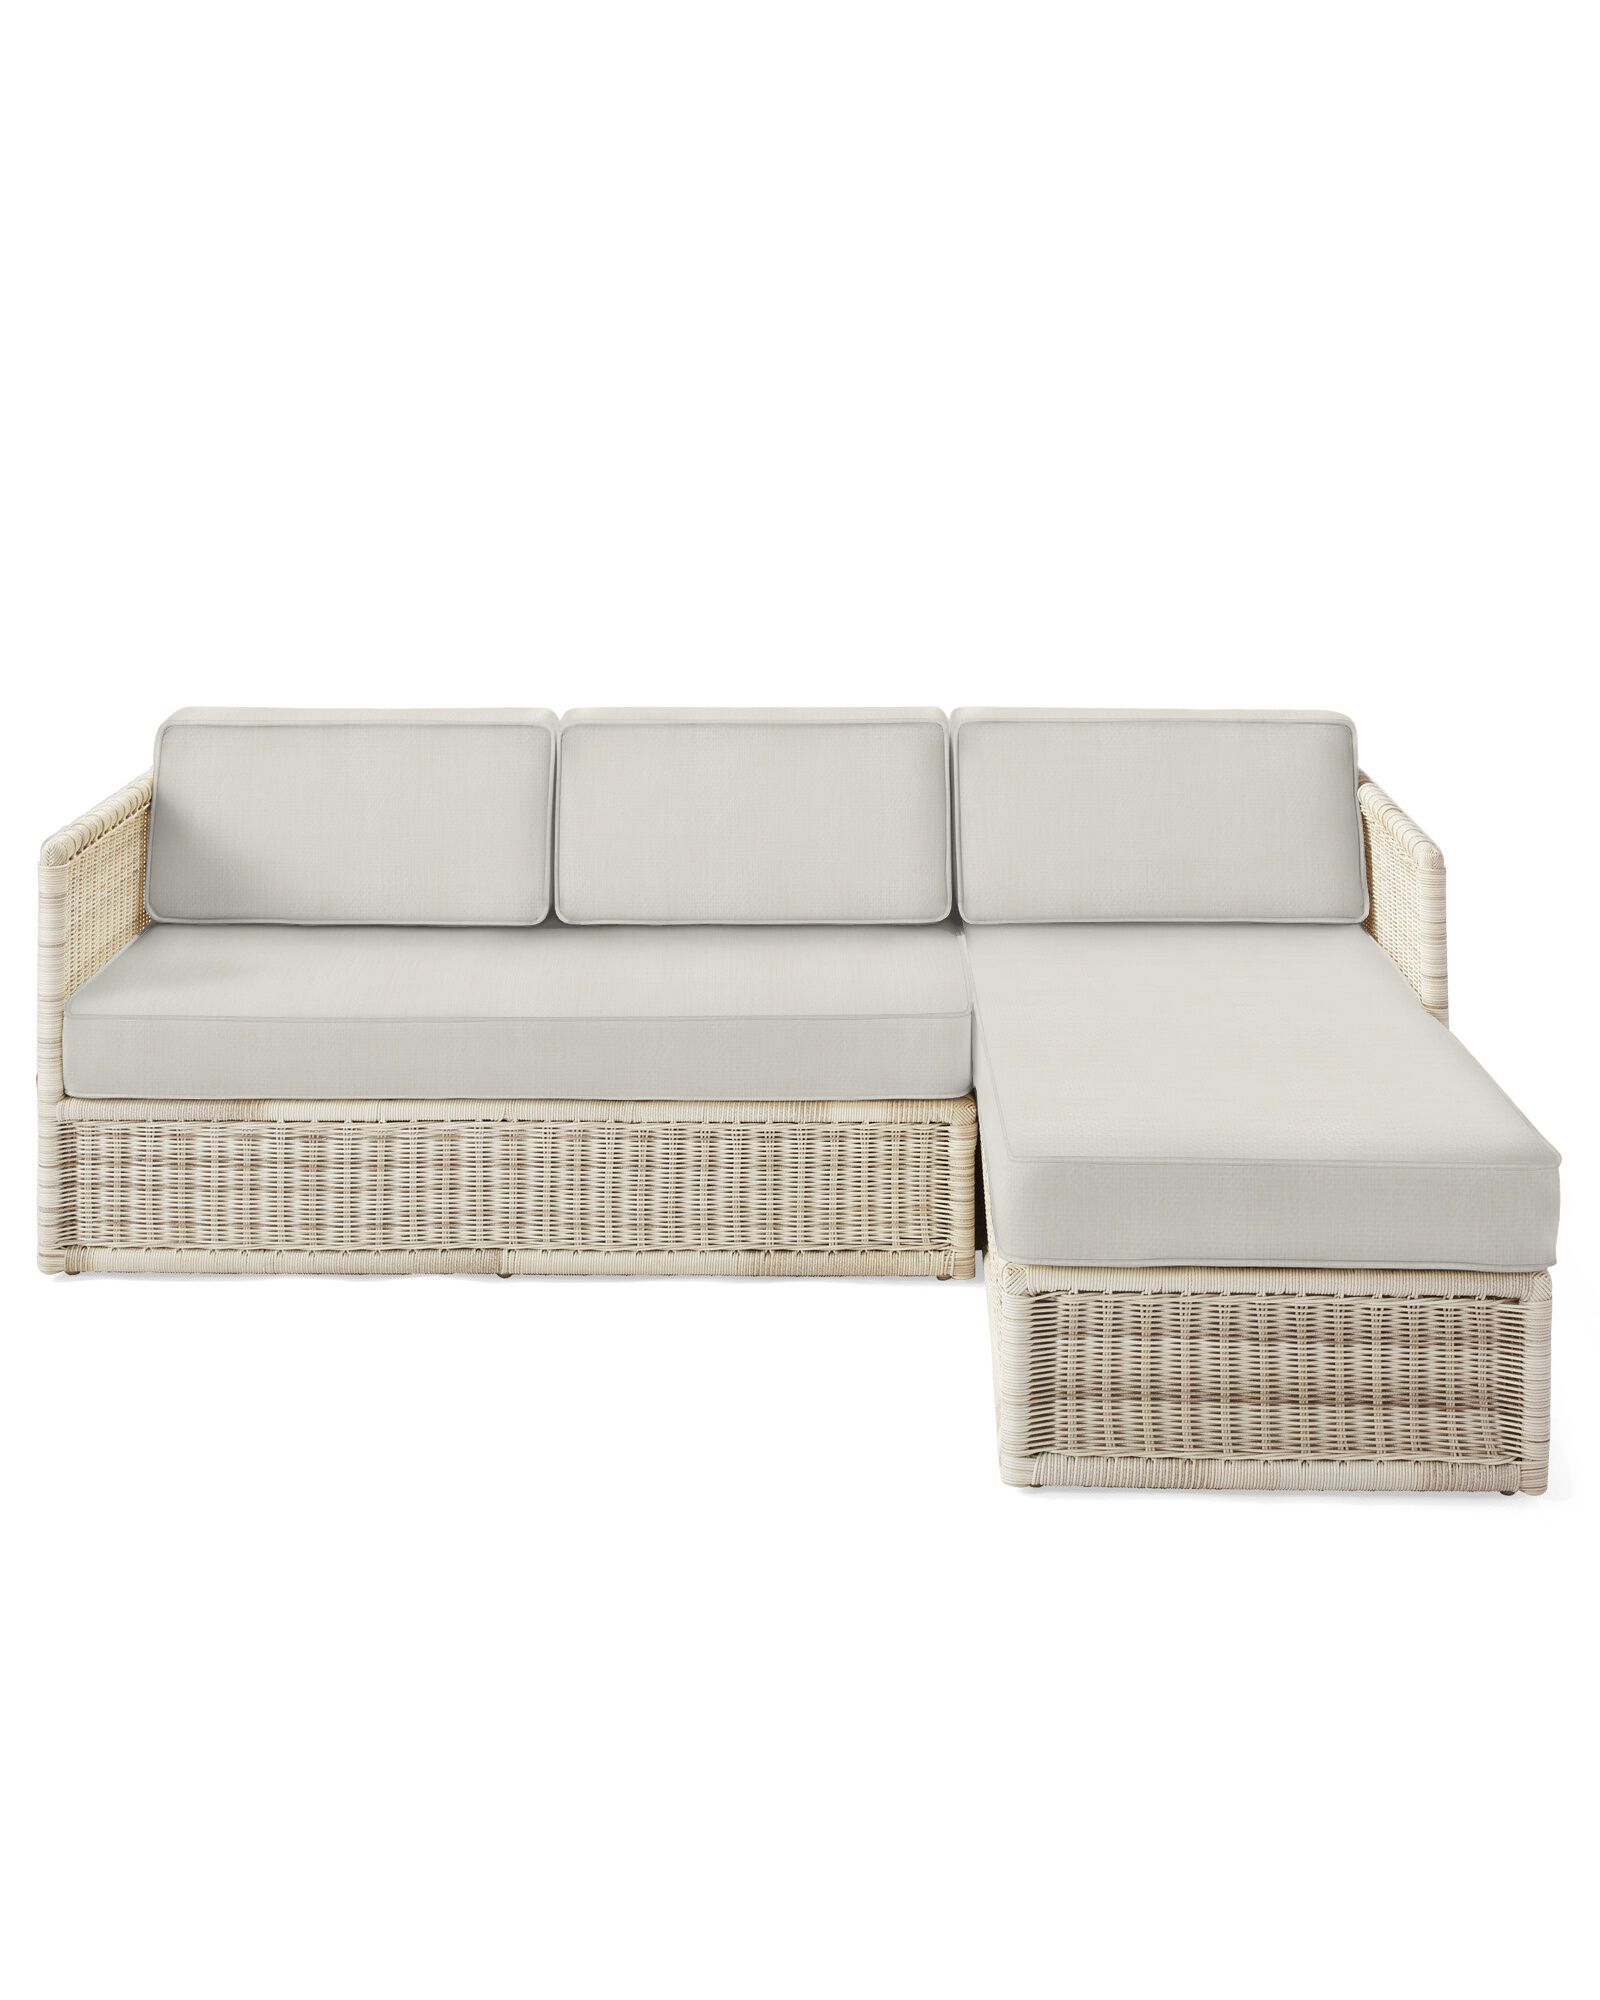 Cushion Cover for Pacifica Chaise Sectional, Perennials Basketweave Chalk